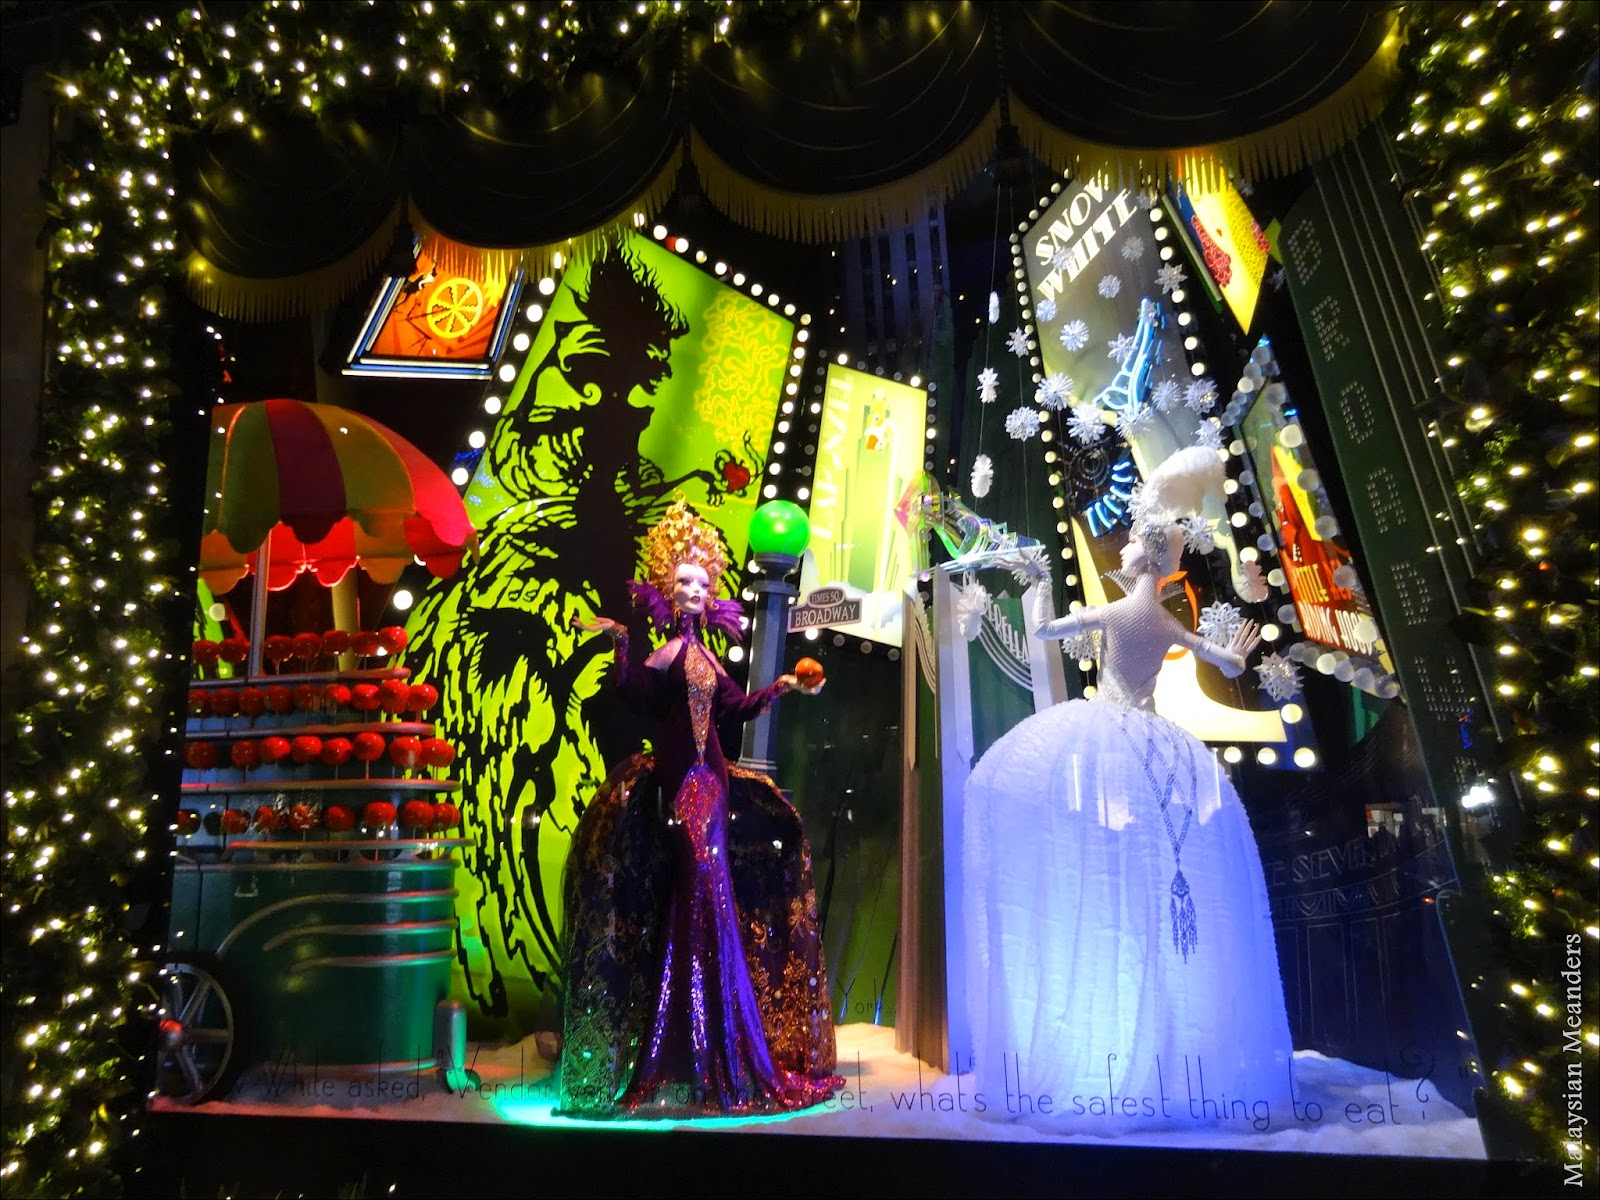 Malaysian Meanders: Saks Fifth Avenue\'s Enchanting Holiday Windows